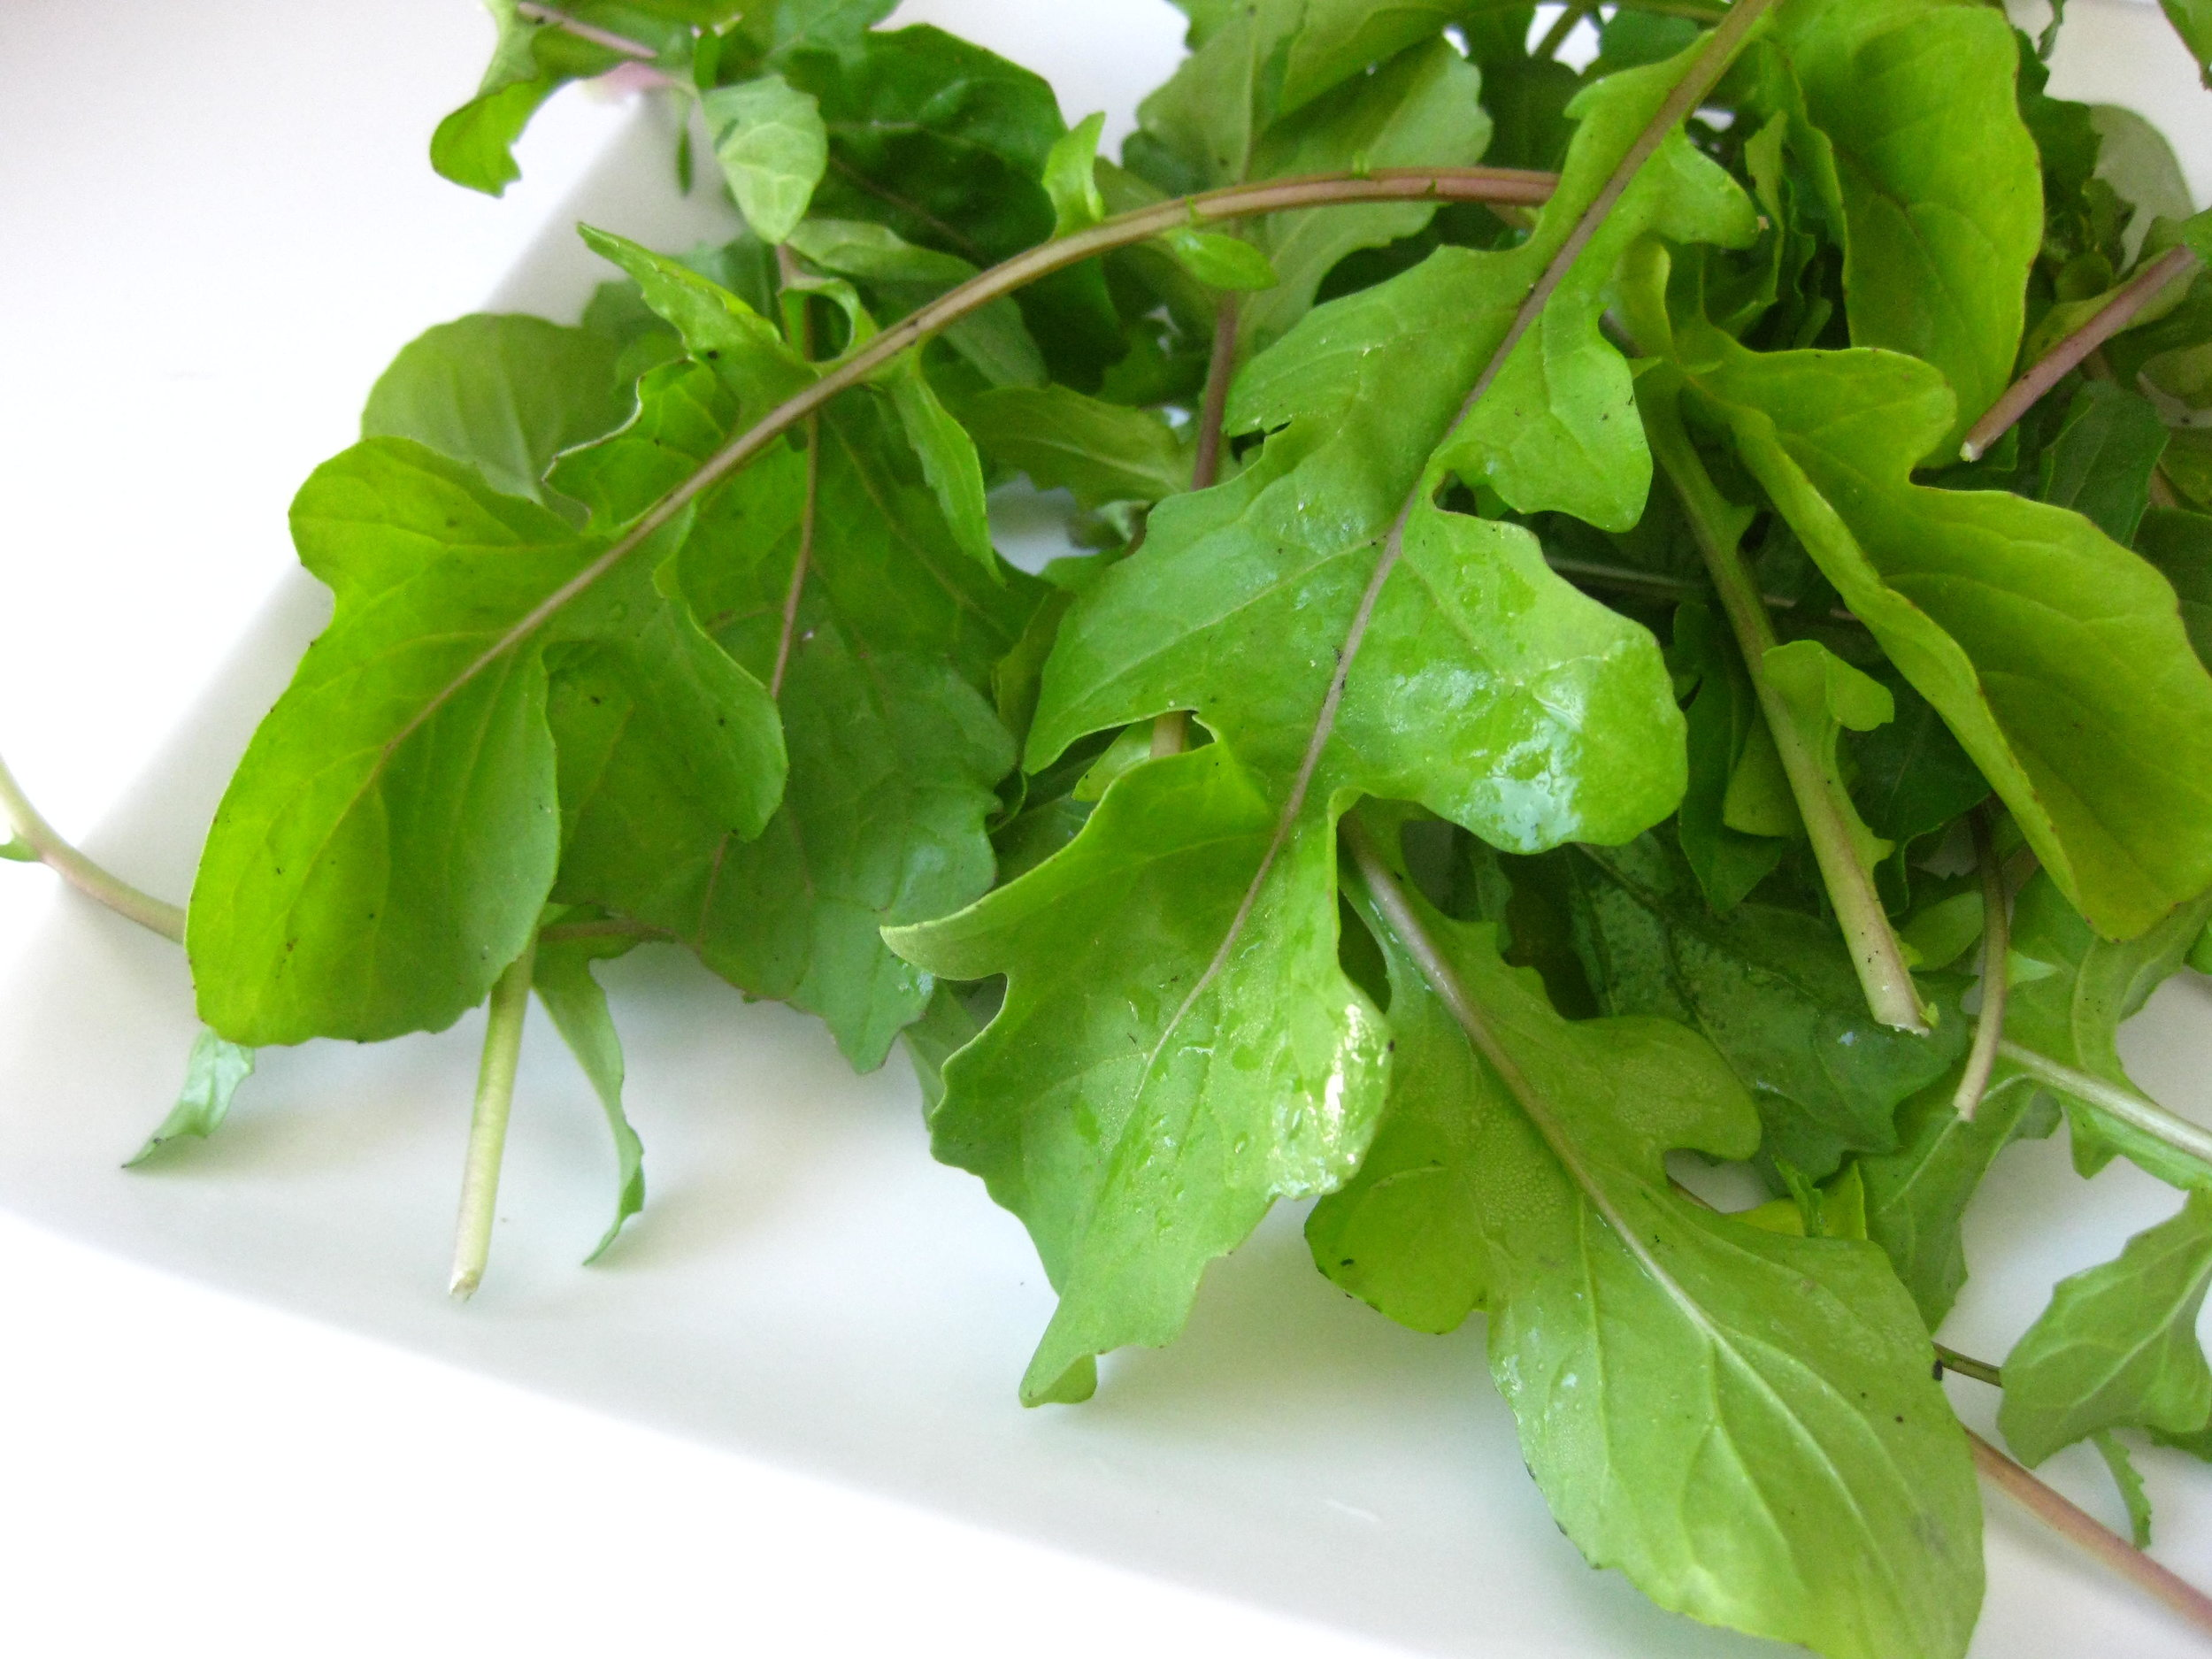 Did you know… - The fresher the ingredients are, especially in greens and produce, the more nutritious they are.